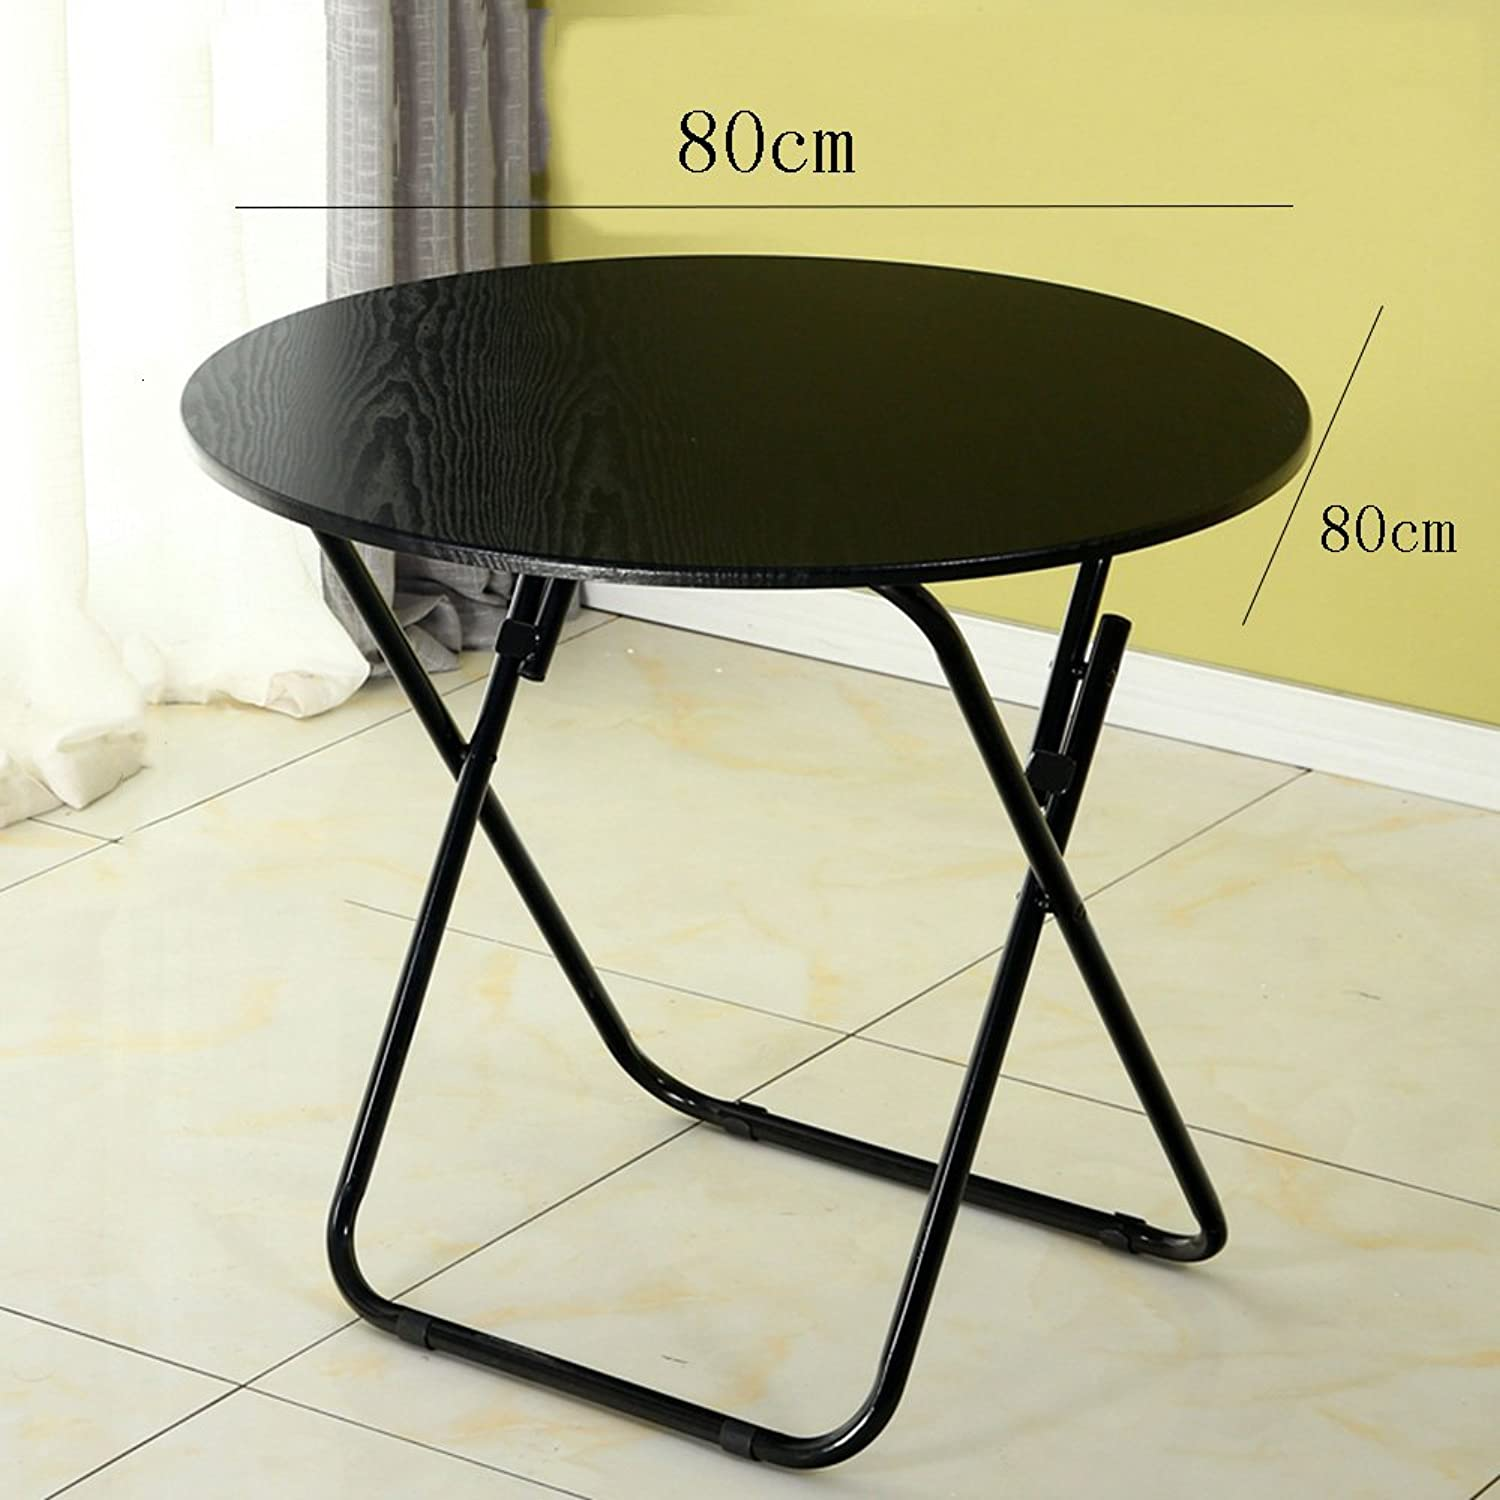 ZHPRZD Folding Table Dining Table Eating Table Household Small Apartment Dining Table Round Table Geblackus Table Simple Simple Portable Square (Size   80  80cm)